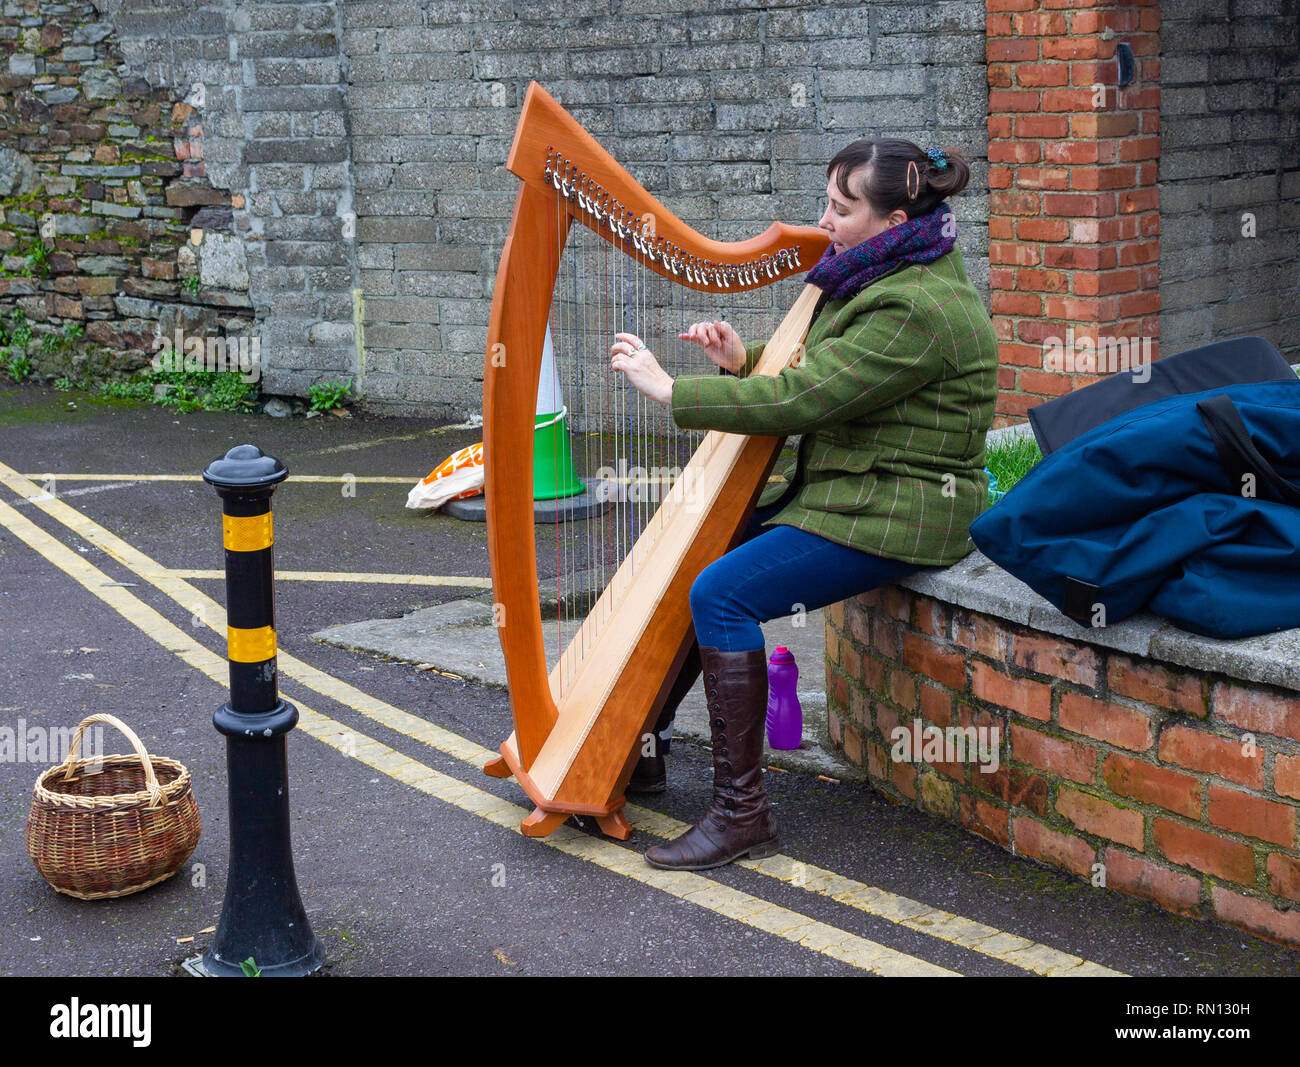 female-busker-playing-a-harp-for-money-sitting-on-a-brick-wall-RN130H.jpg